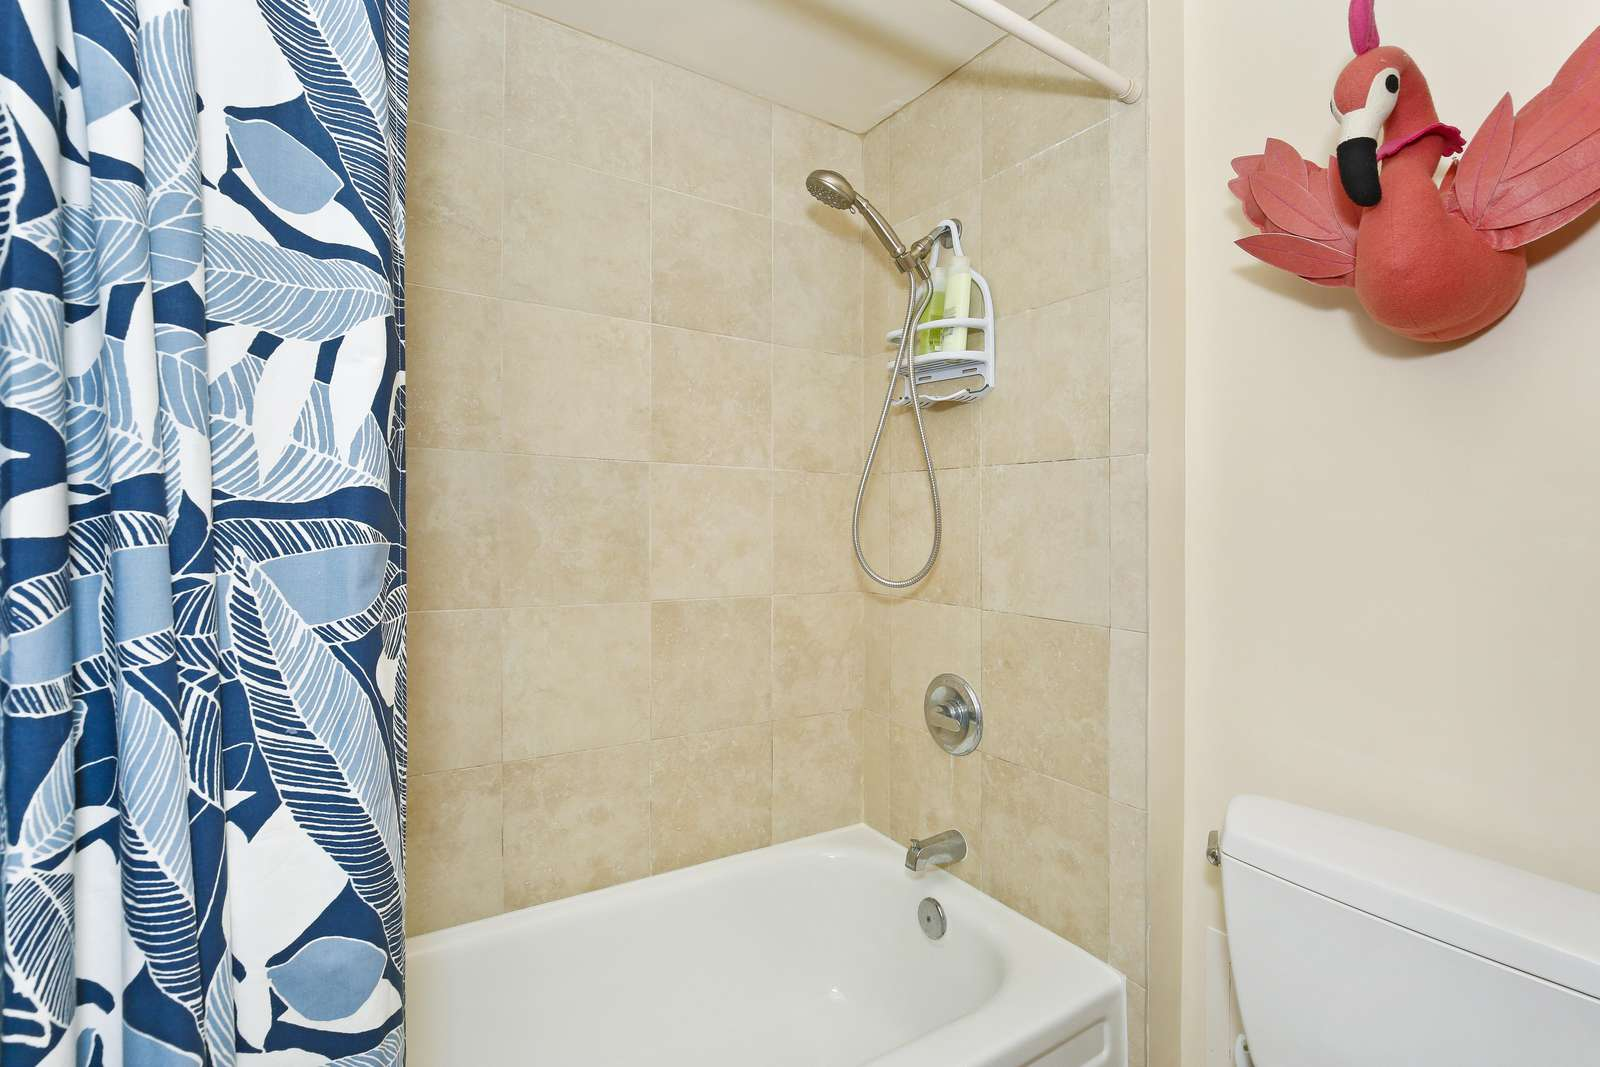 Shower/Tub combo with hand held shower.